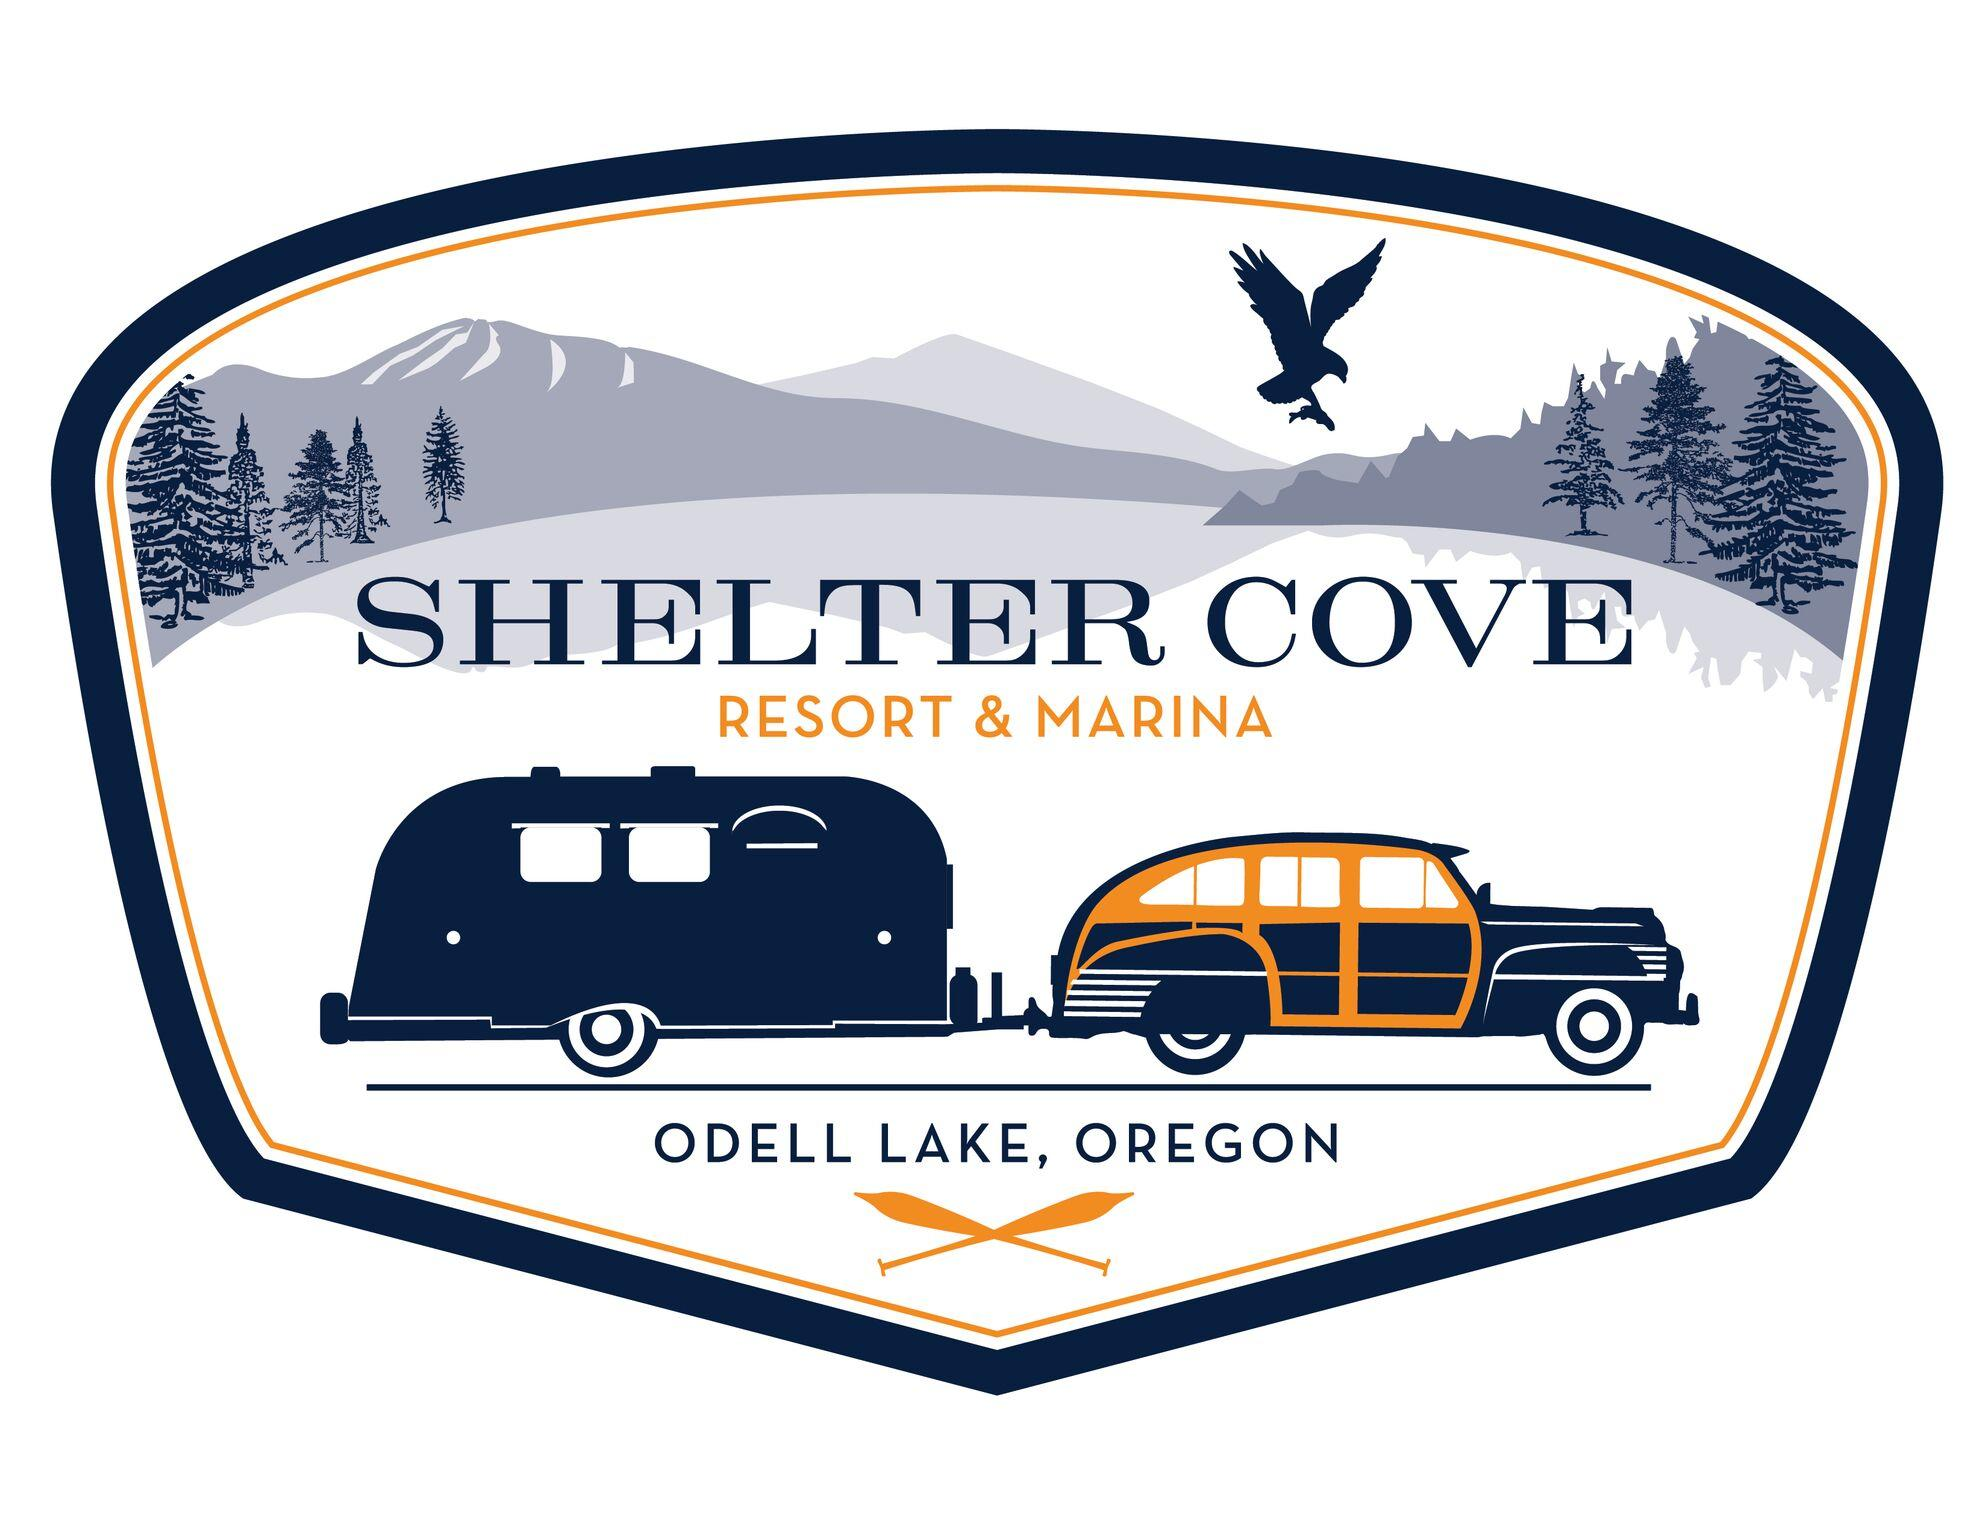 Shelter cove resort marina coupons near me in crescent for Where to get a fishing license near me